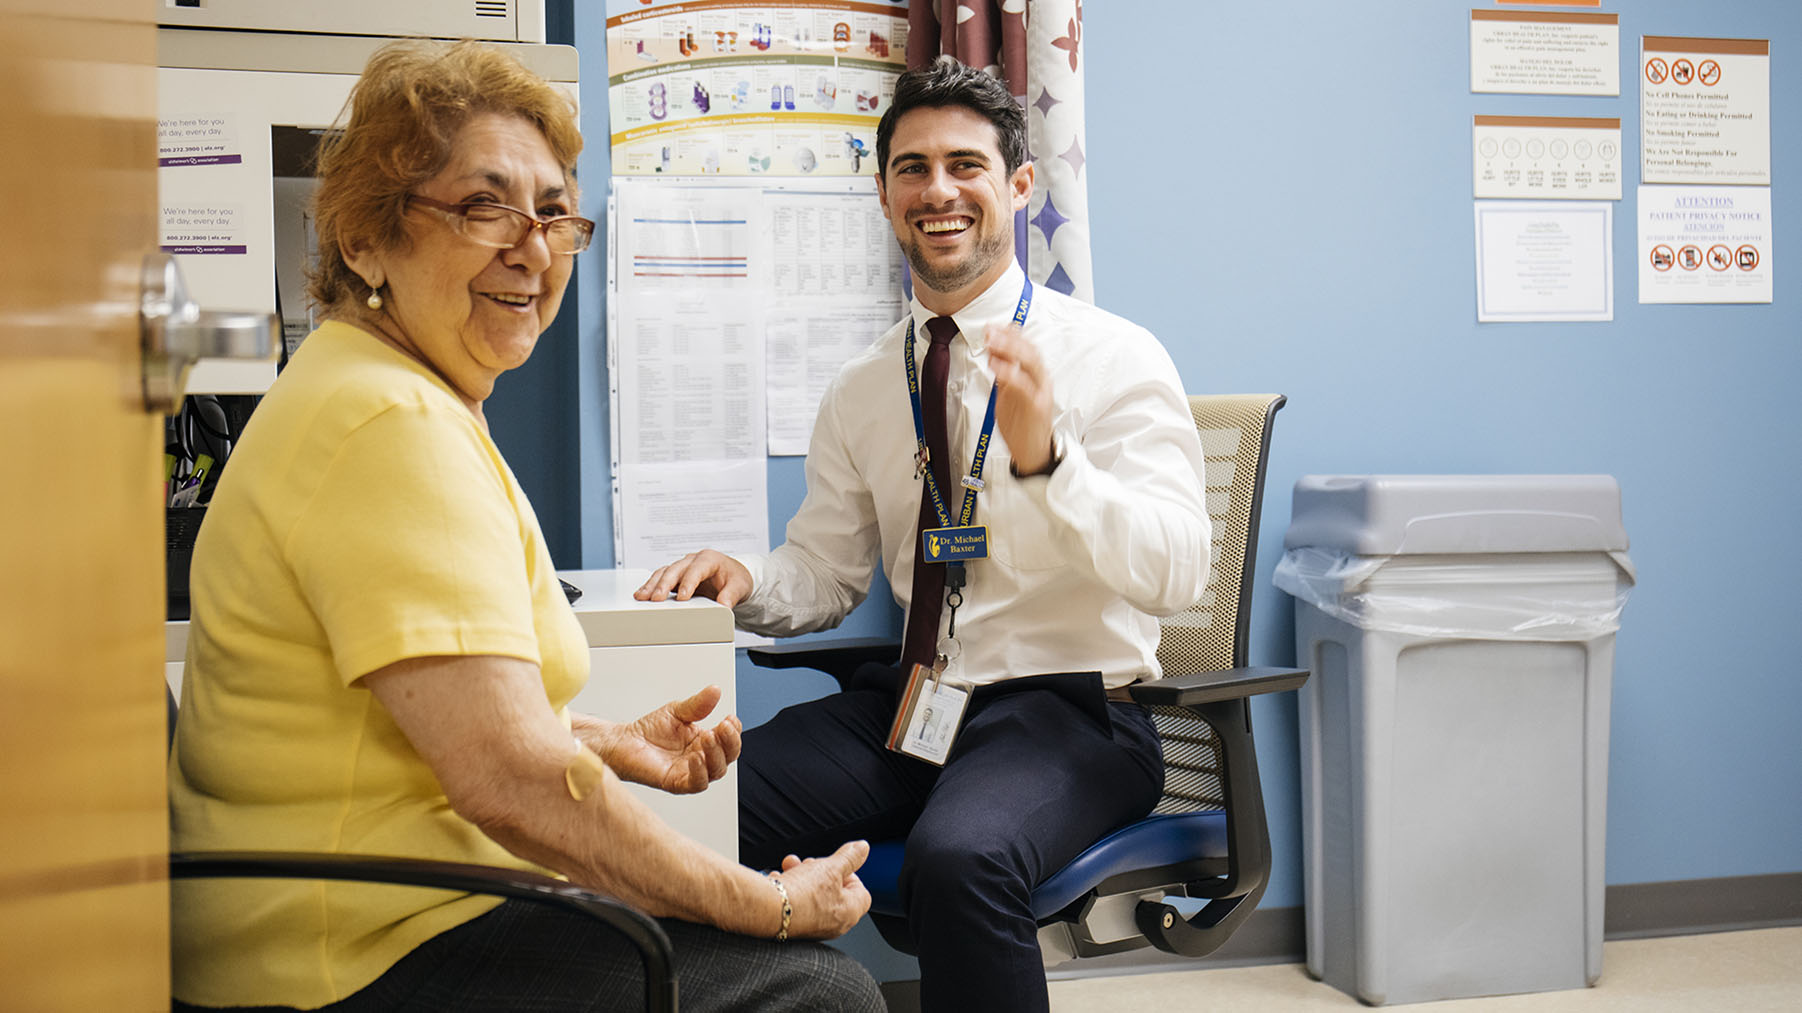 Center for Heathy Aging Patient Maria, and Clinical Pharmacist Michael V. Baxter meet for a consultation at Urban Health Plan, Inc. in the Bronx, New York. (Photo by Donnie Hedden for Direct Relief)